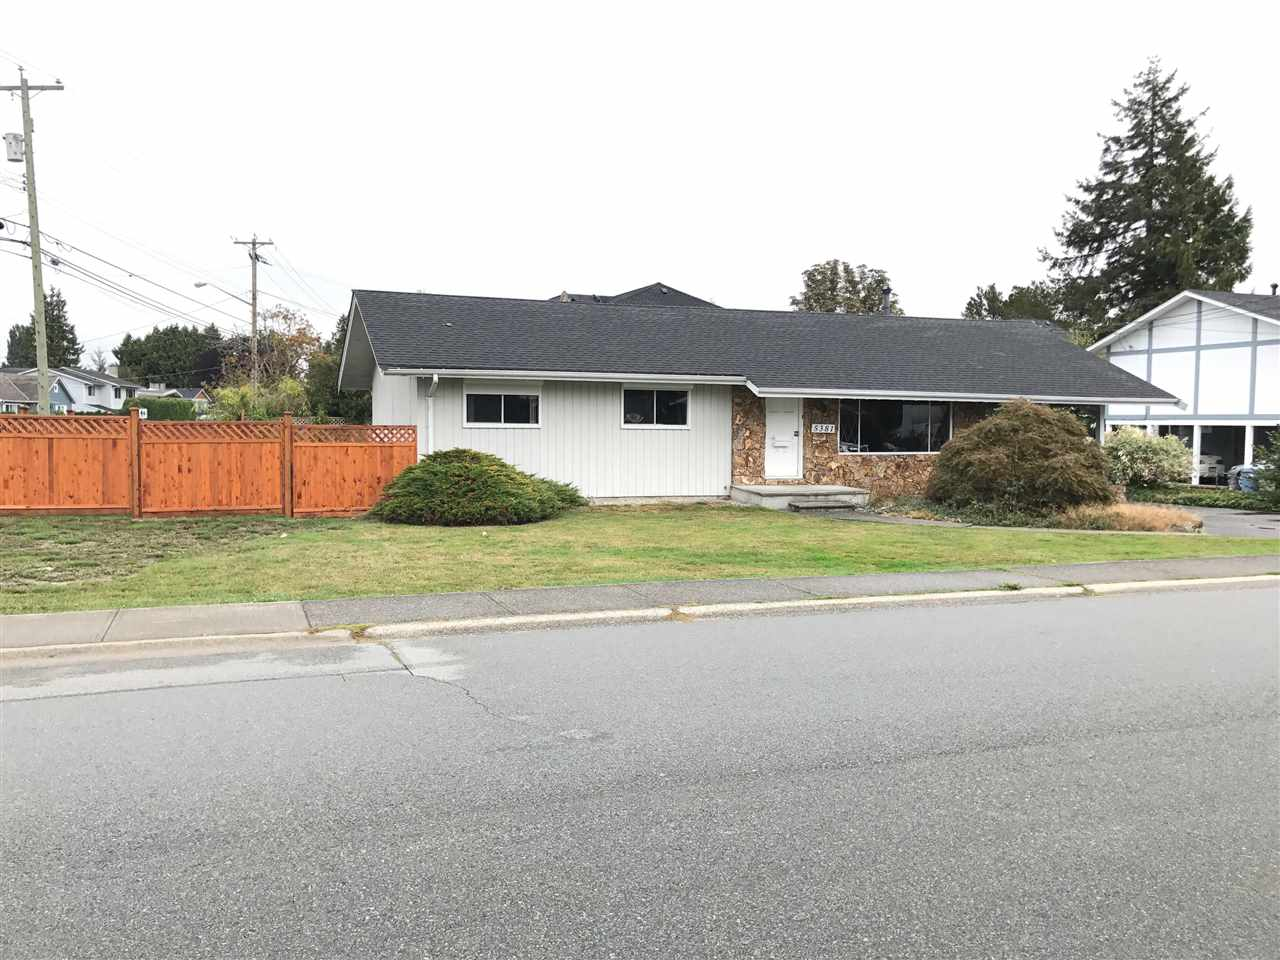 HUGE CORNER LOT, 10,003 square feet,  with a cozy rancher. Located just minutes from Ladner Village in Central Ladner and close to Hawthorne Elementary, and a short drive to new Mall development and to highways to Richmond and Vancouver. Potential to build a 4,000 square foot house with a detached garage, inquire with City Hall. Viewings by appointment. All sizes and ages are approximate, buyer or buyers agent to verify if deemed important.